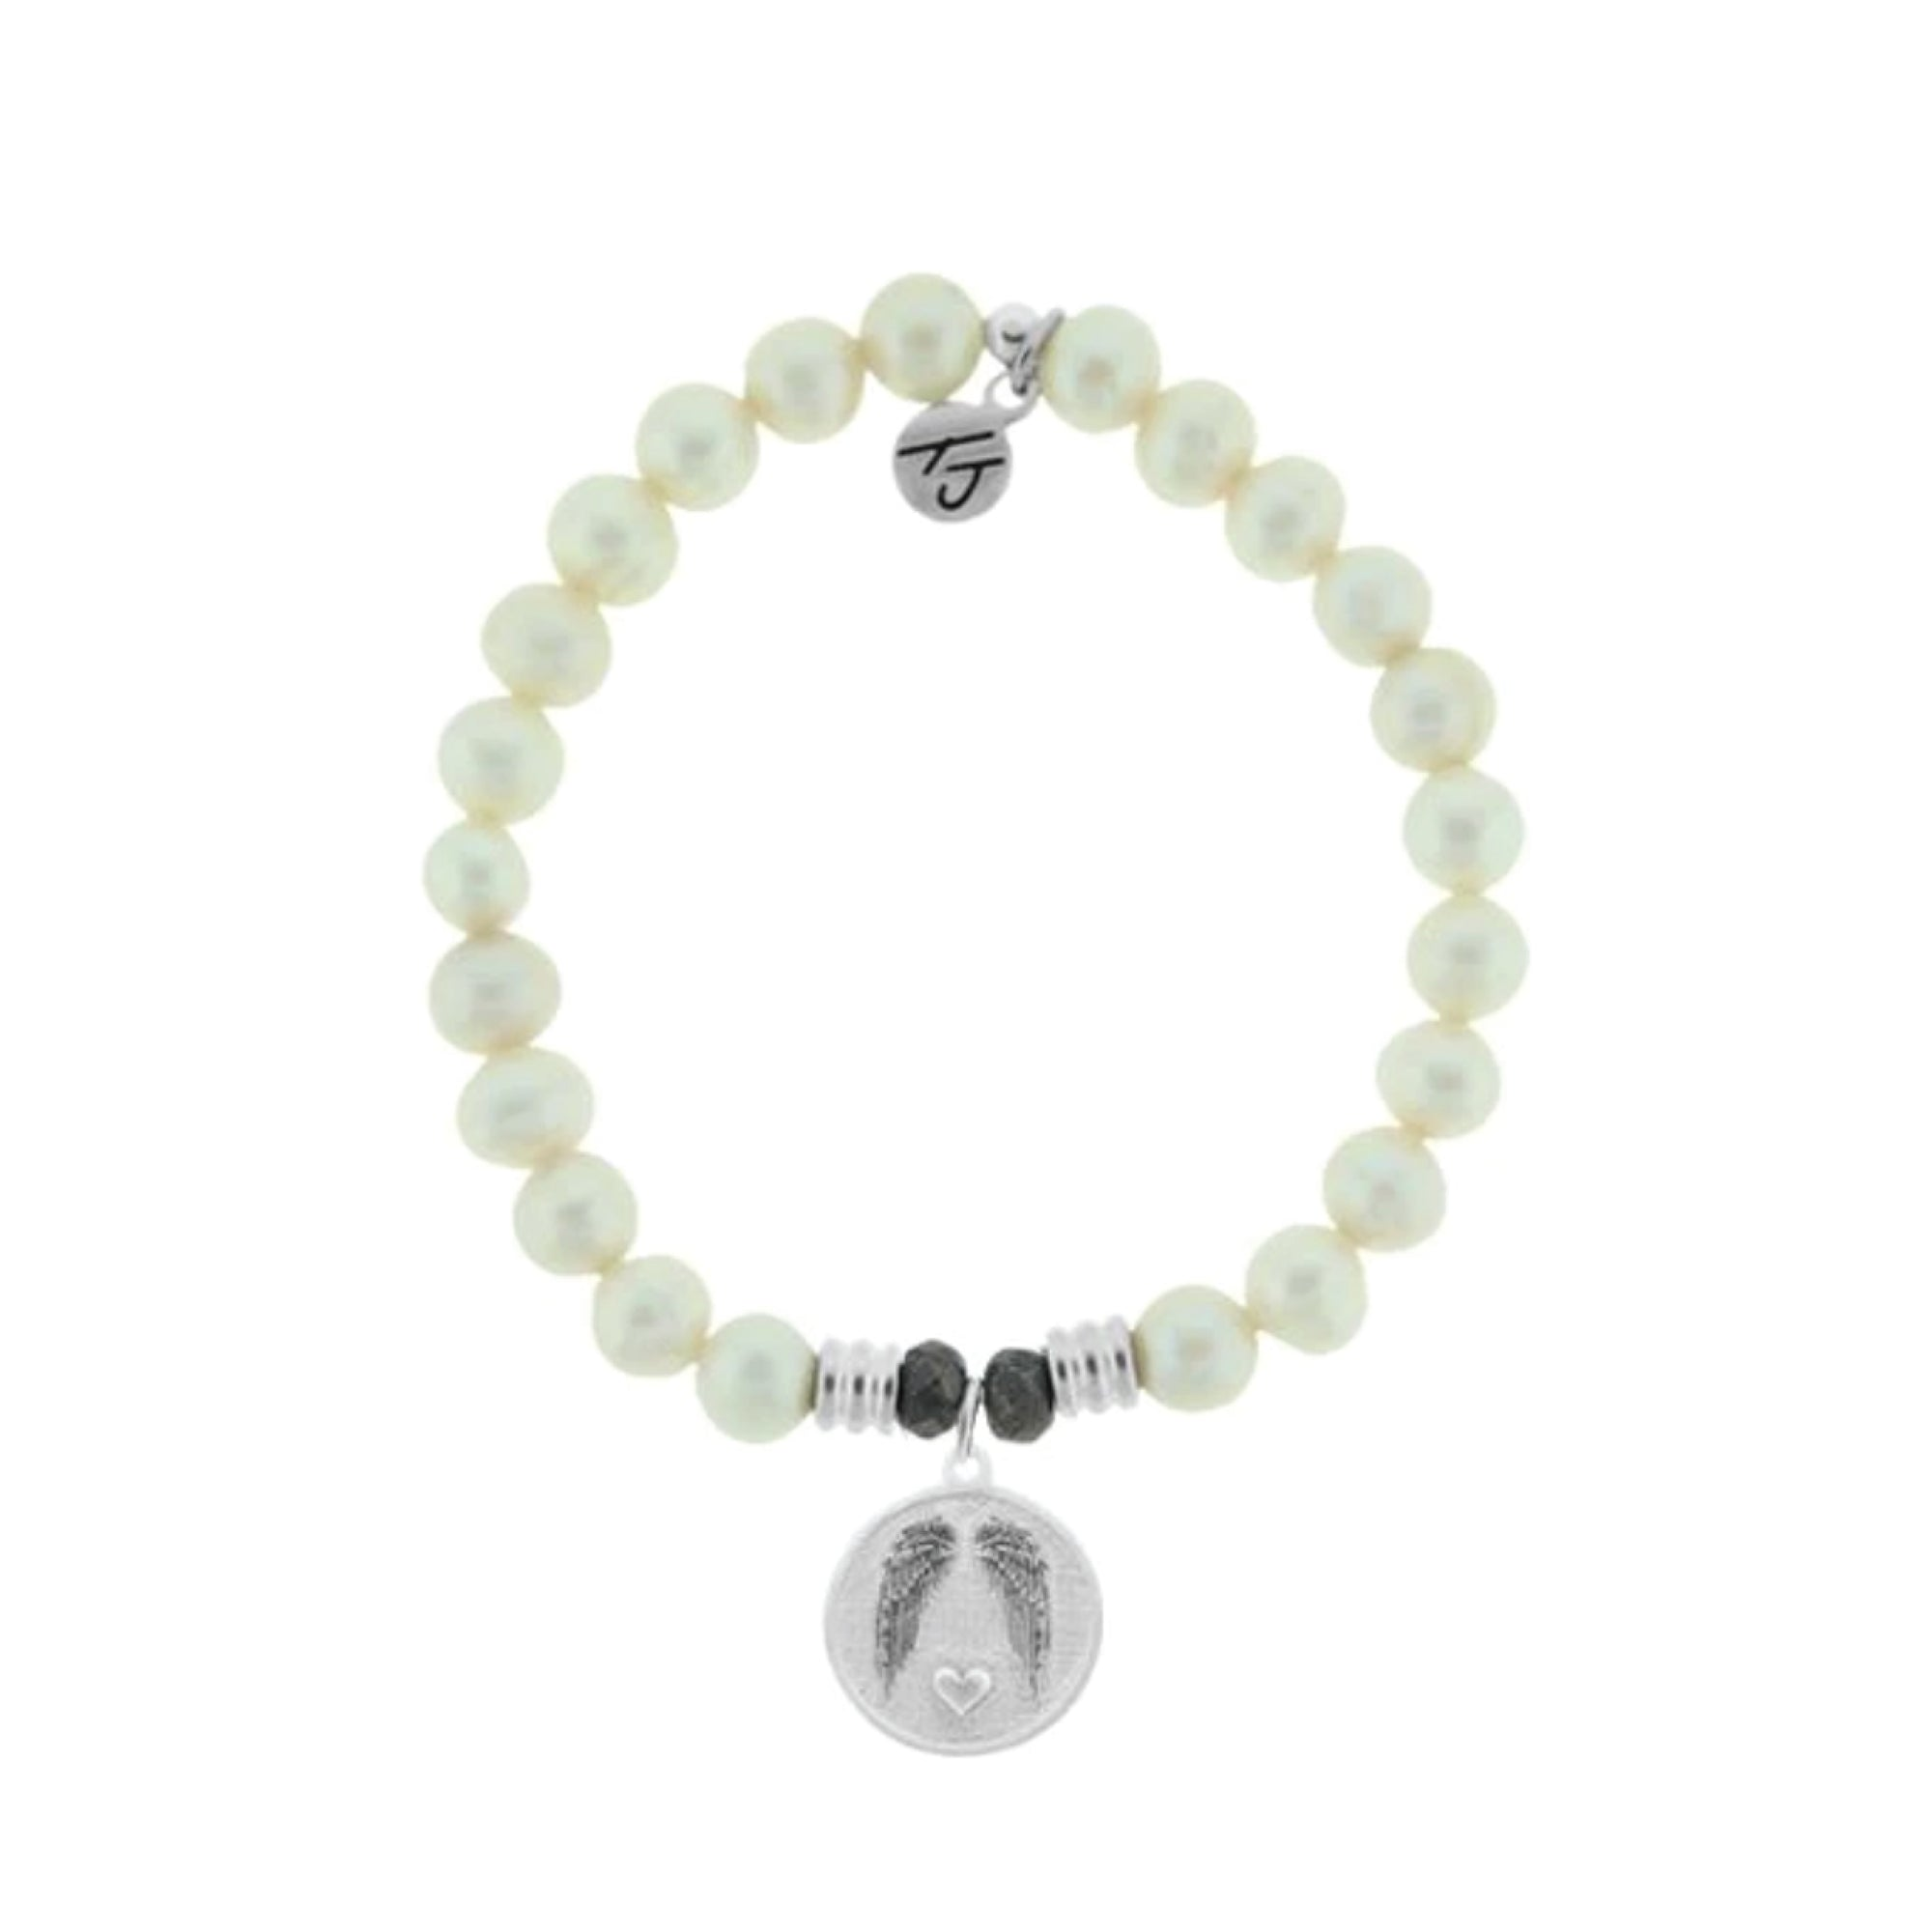 White Pearl Handmade Beaded Stone Bracelet: The Gem of the sea. Known to symbolize new beginnings, prosperity, love, and inner beauty.   Guardian Charm: Those we love don't go away they walk beside us everyday. This charm is your reminder that your angel is always with you, each and every day.